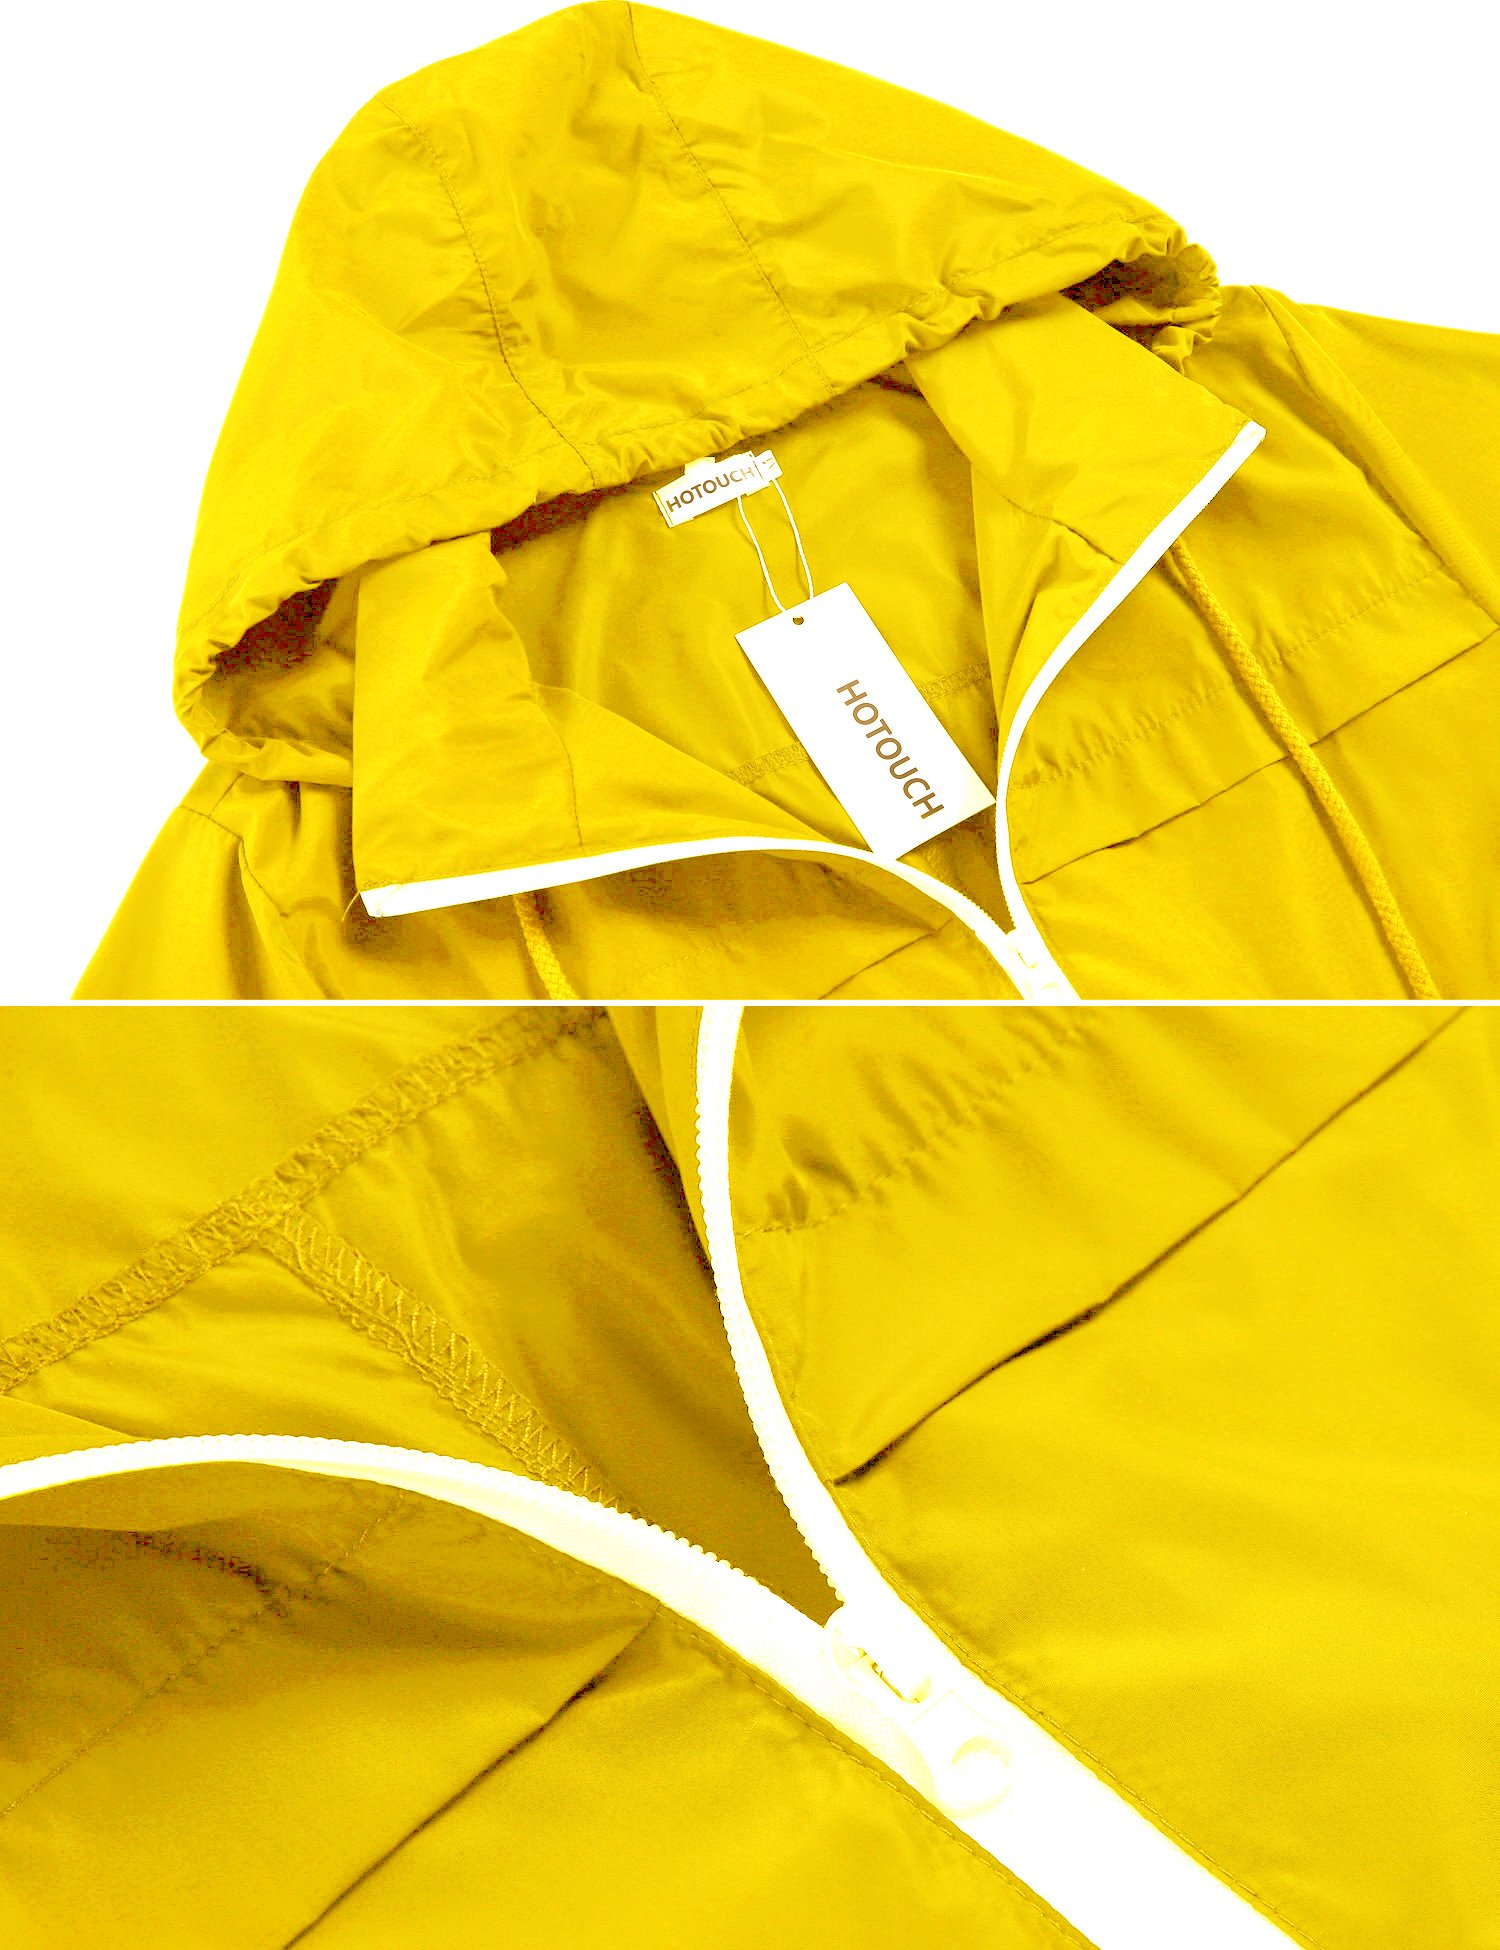 Hotouch Womens' Waterproof Lightweight Raincoat Hooded Outdoor Hiking Long Rain Jacket Yellow S by Hotouch (Image #3)